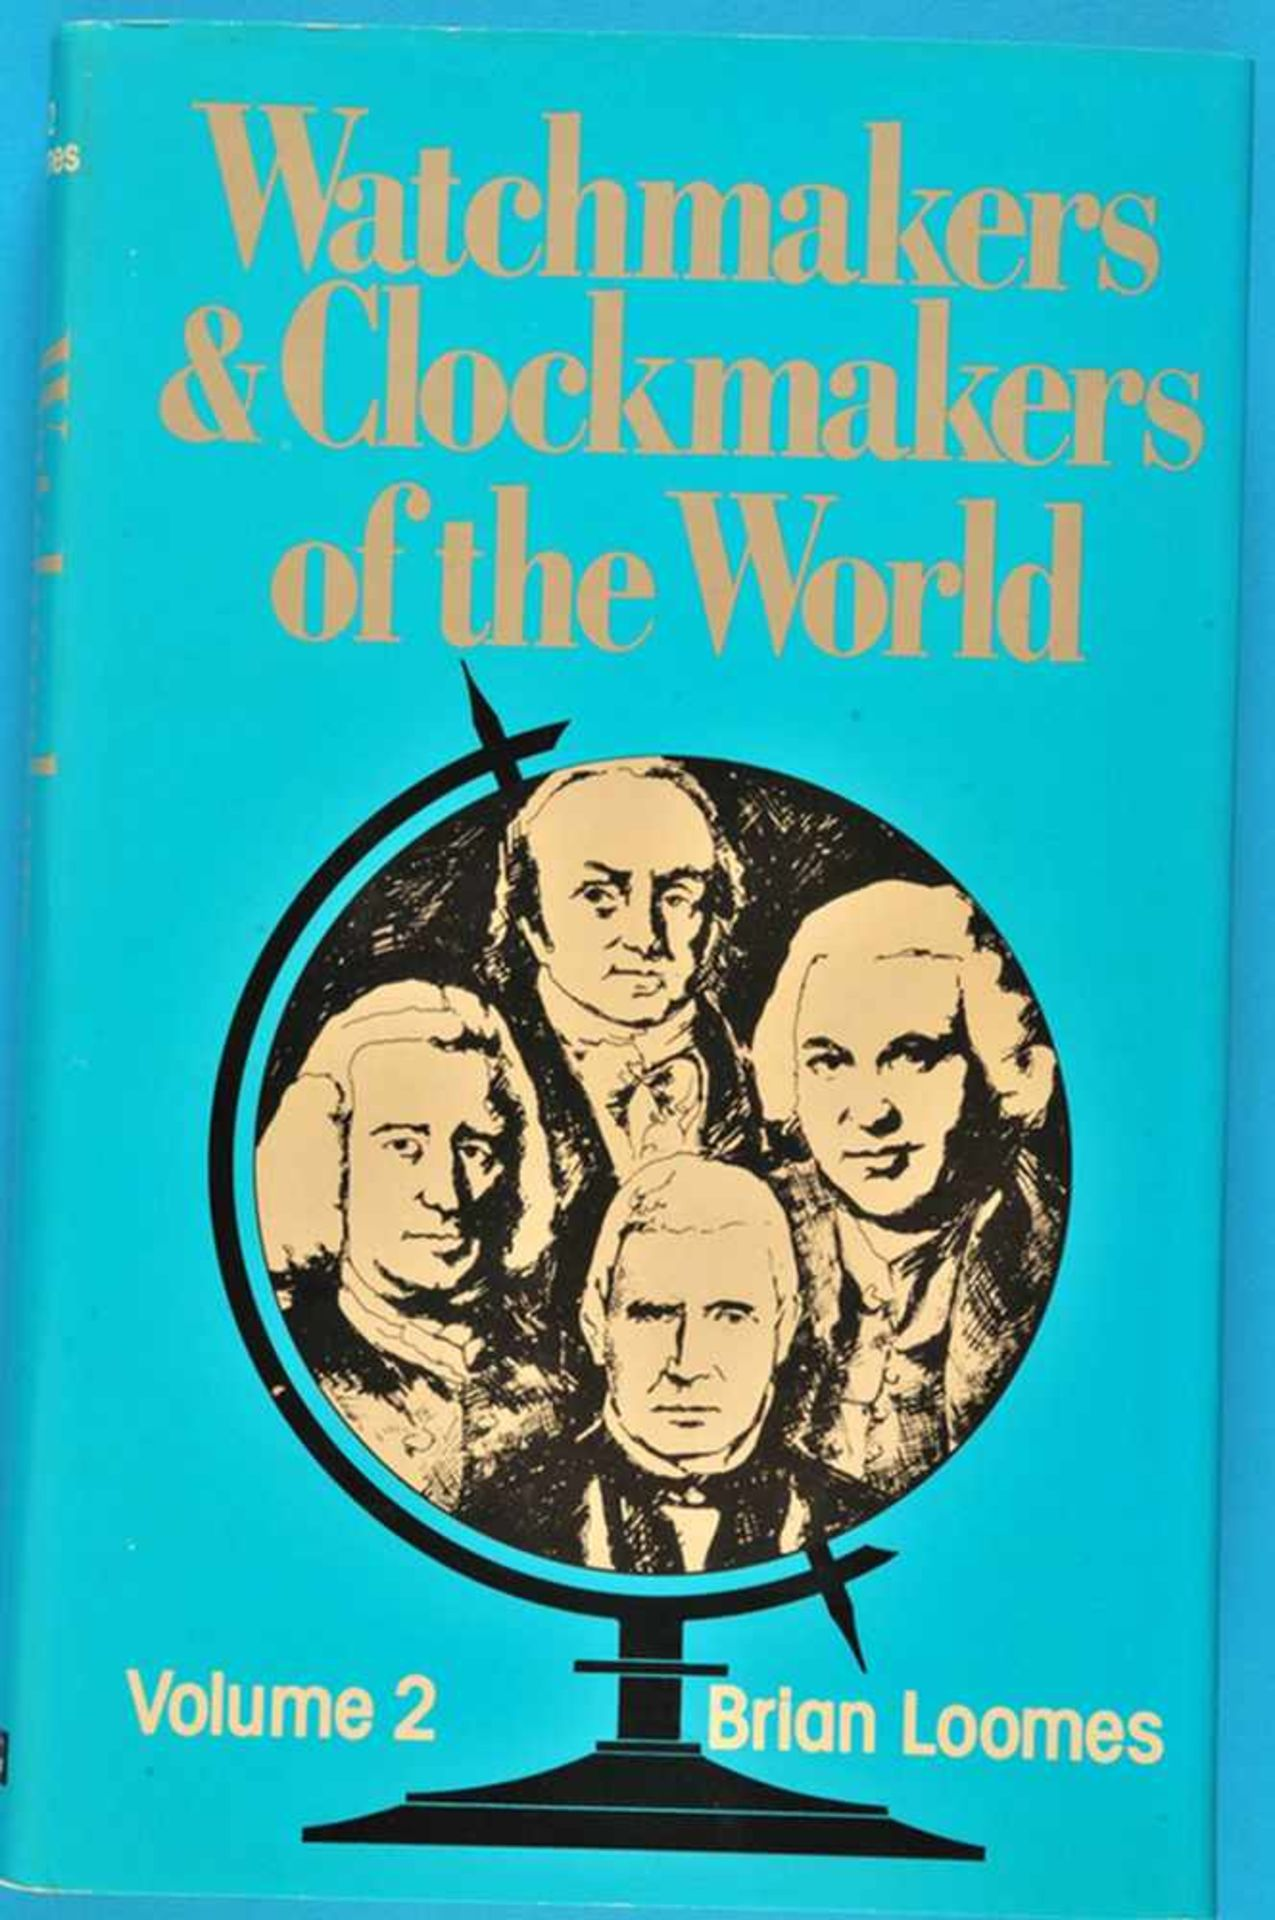 Brian Loomes, Watchmakers and Clockmakers of the World, Volume 2Brian Loomes, Watchmakers and